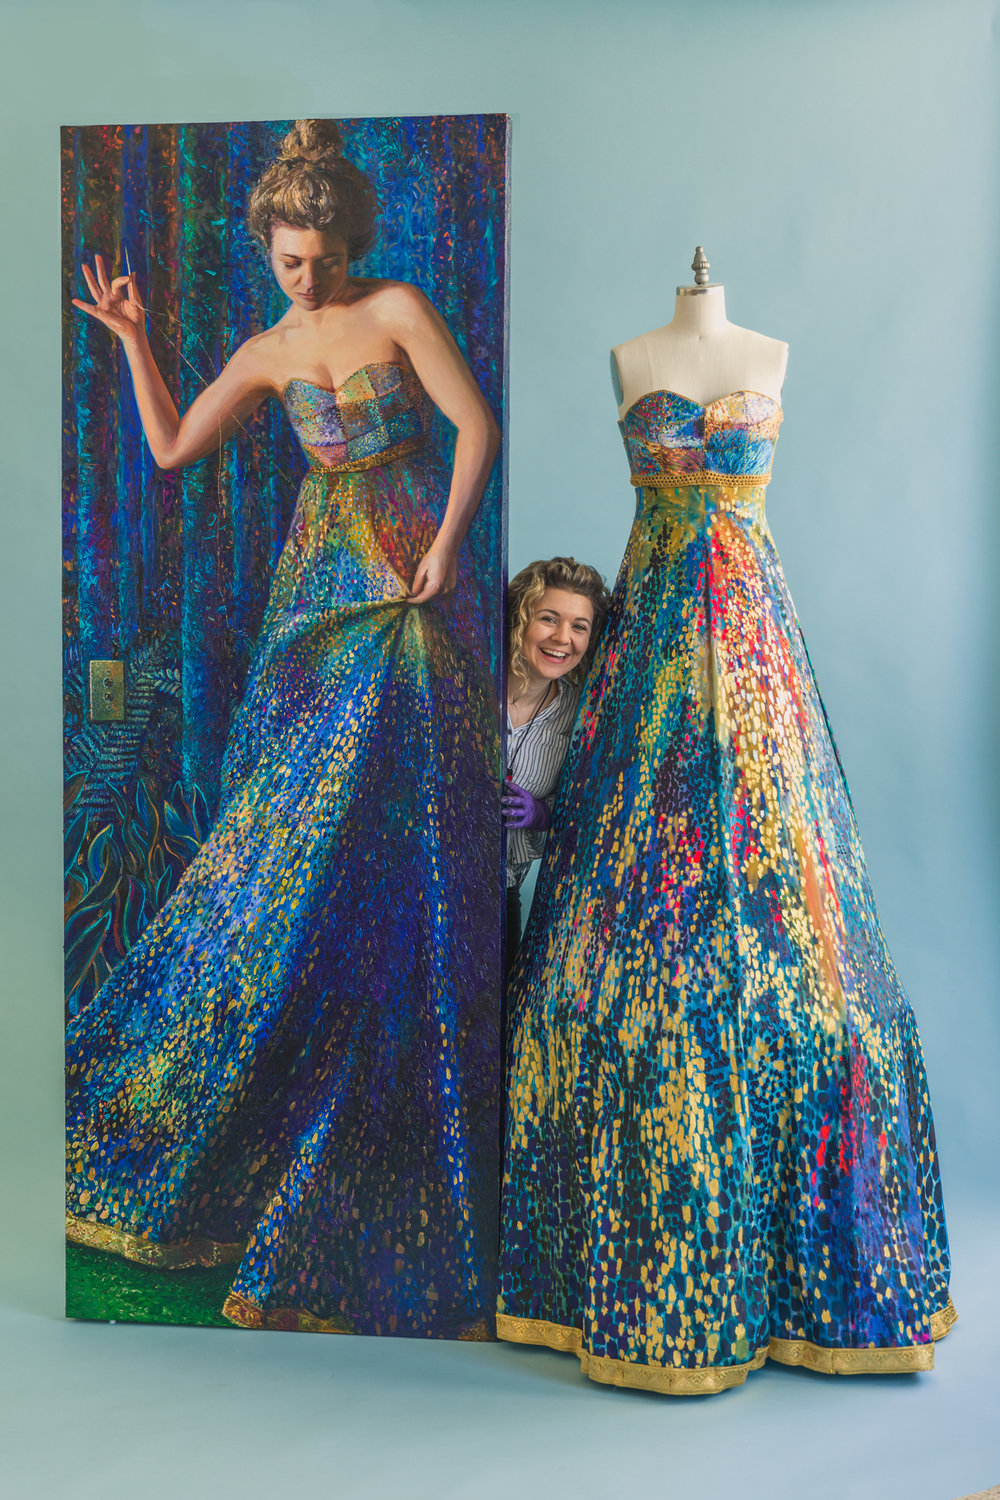 z_with-dress-and-self-portrait-on-blue-backdrop.jpg